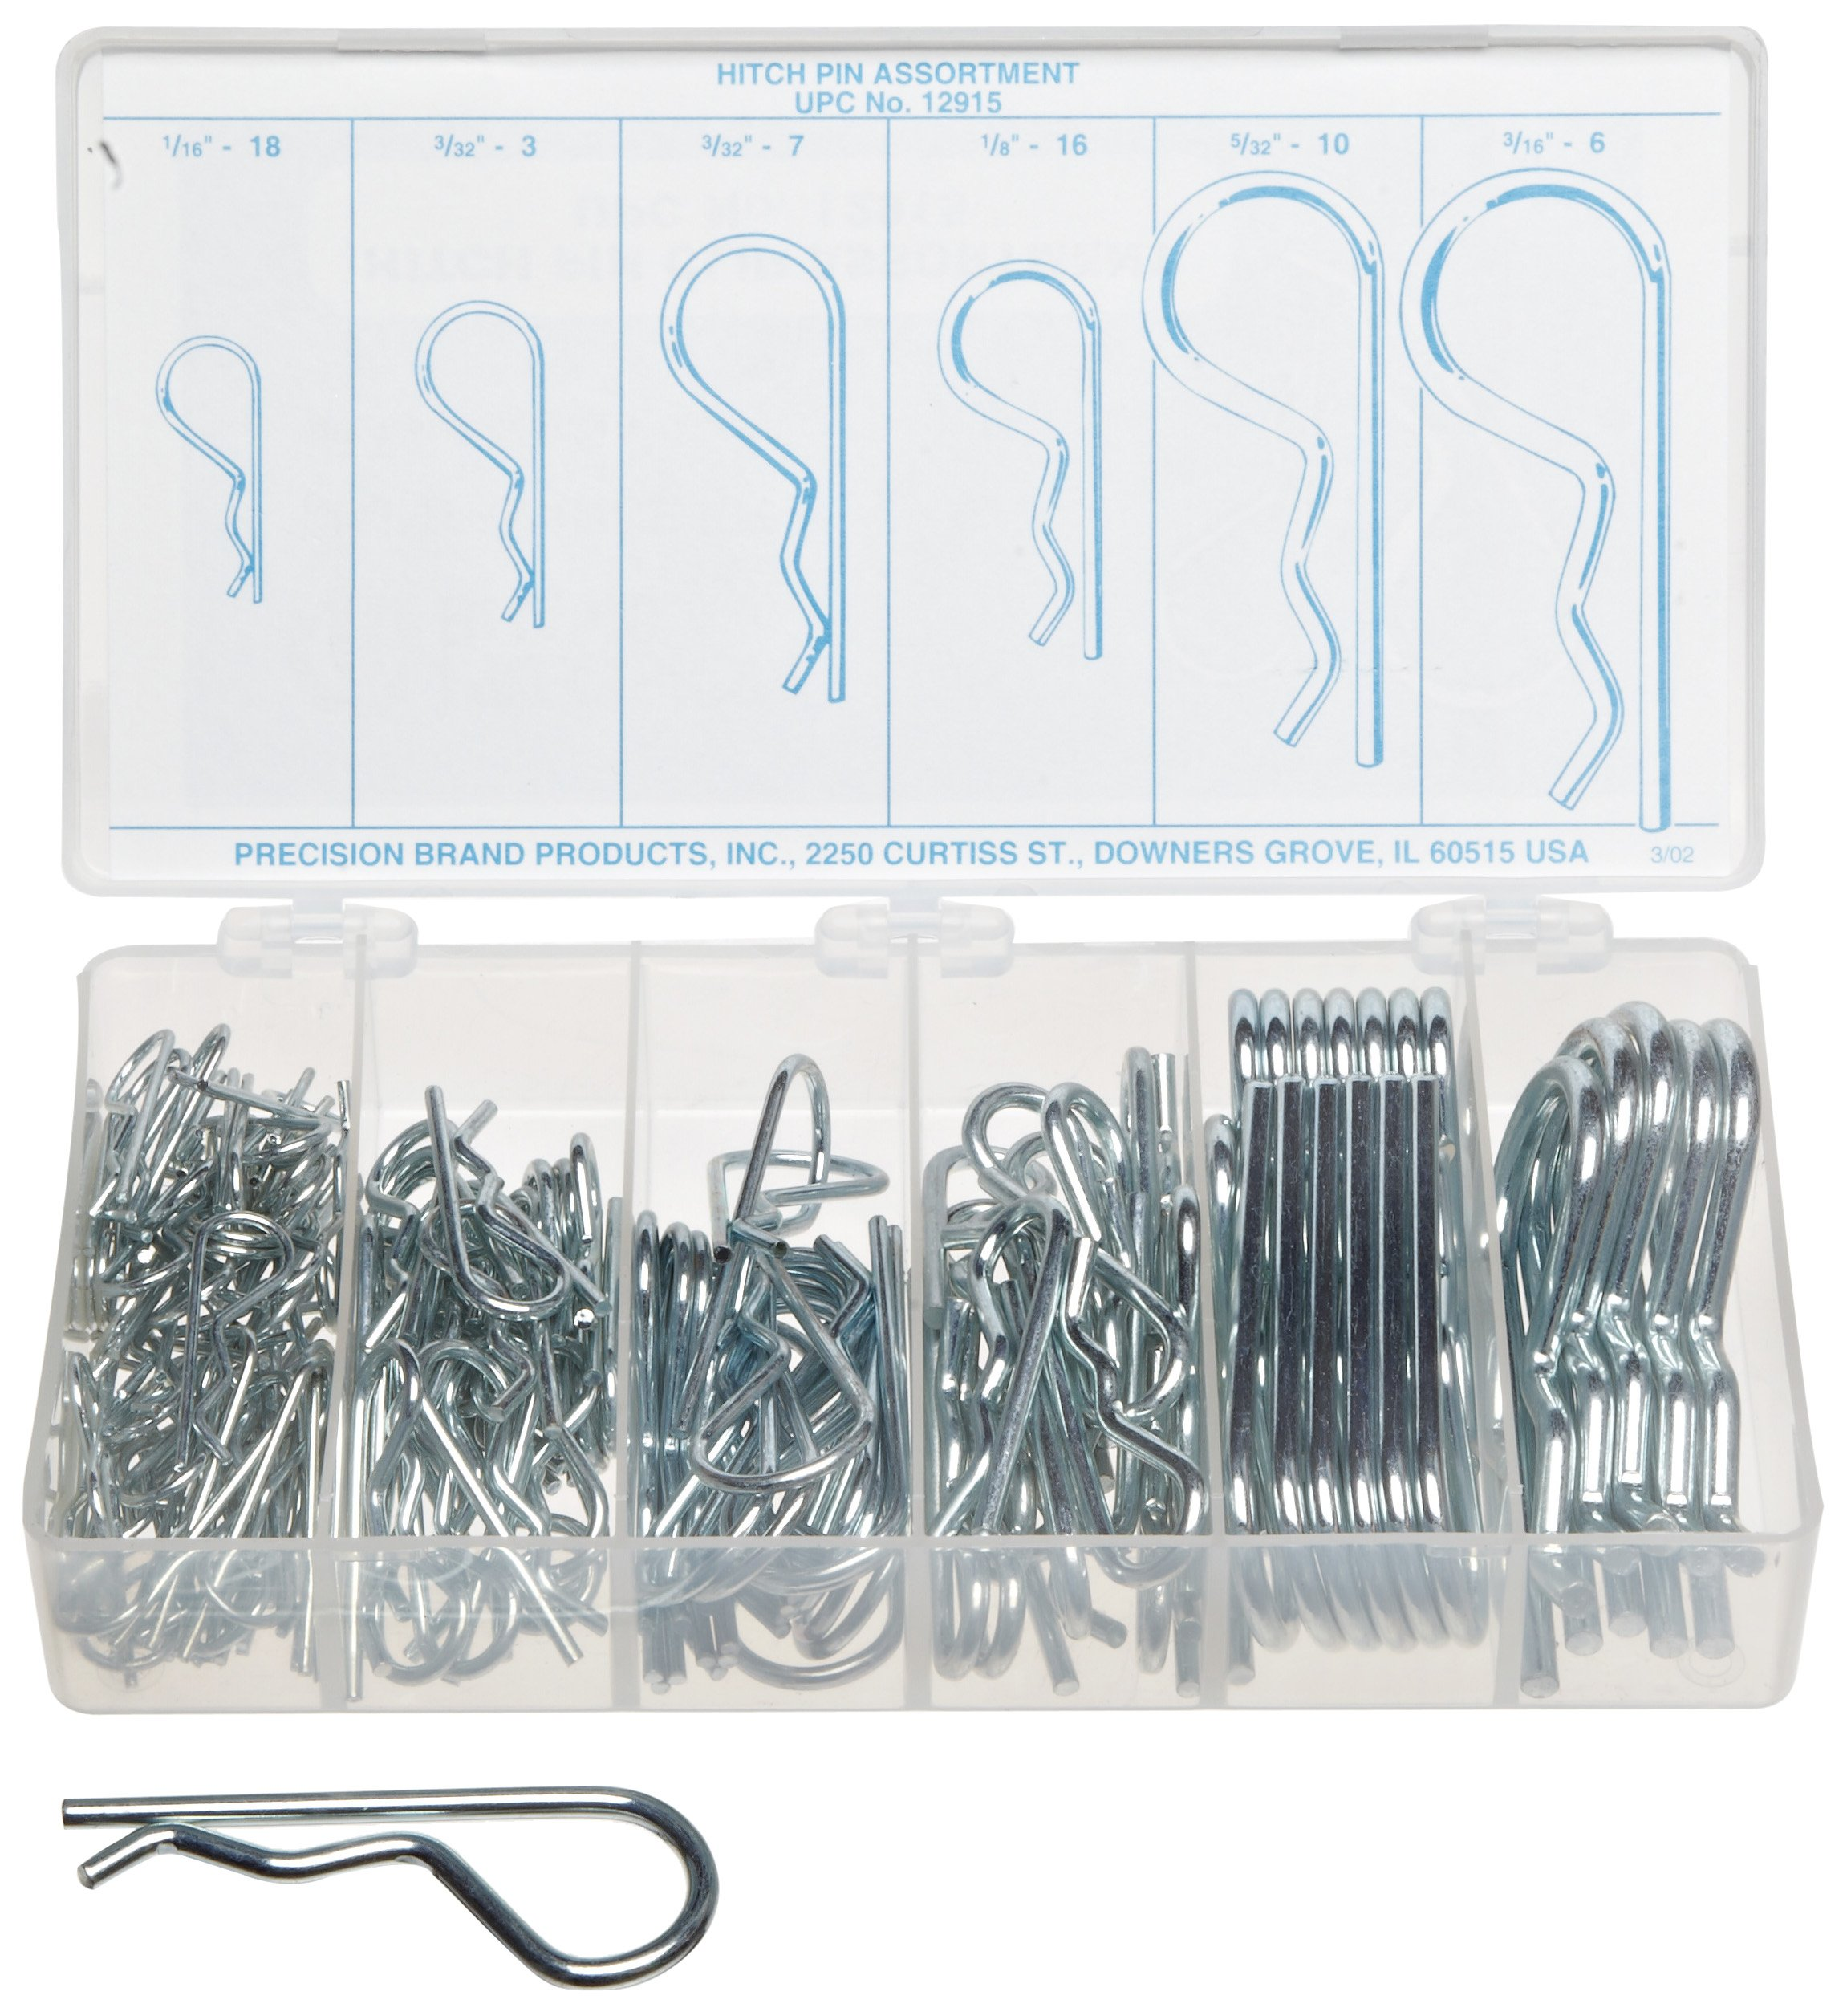 Carbon Steel Cotter Pin Assortment (150 pieces), Plain Finish, Inch, With Case